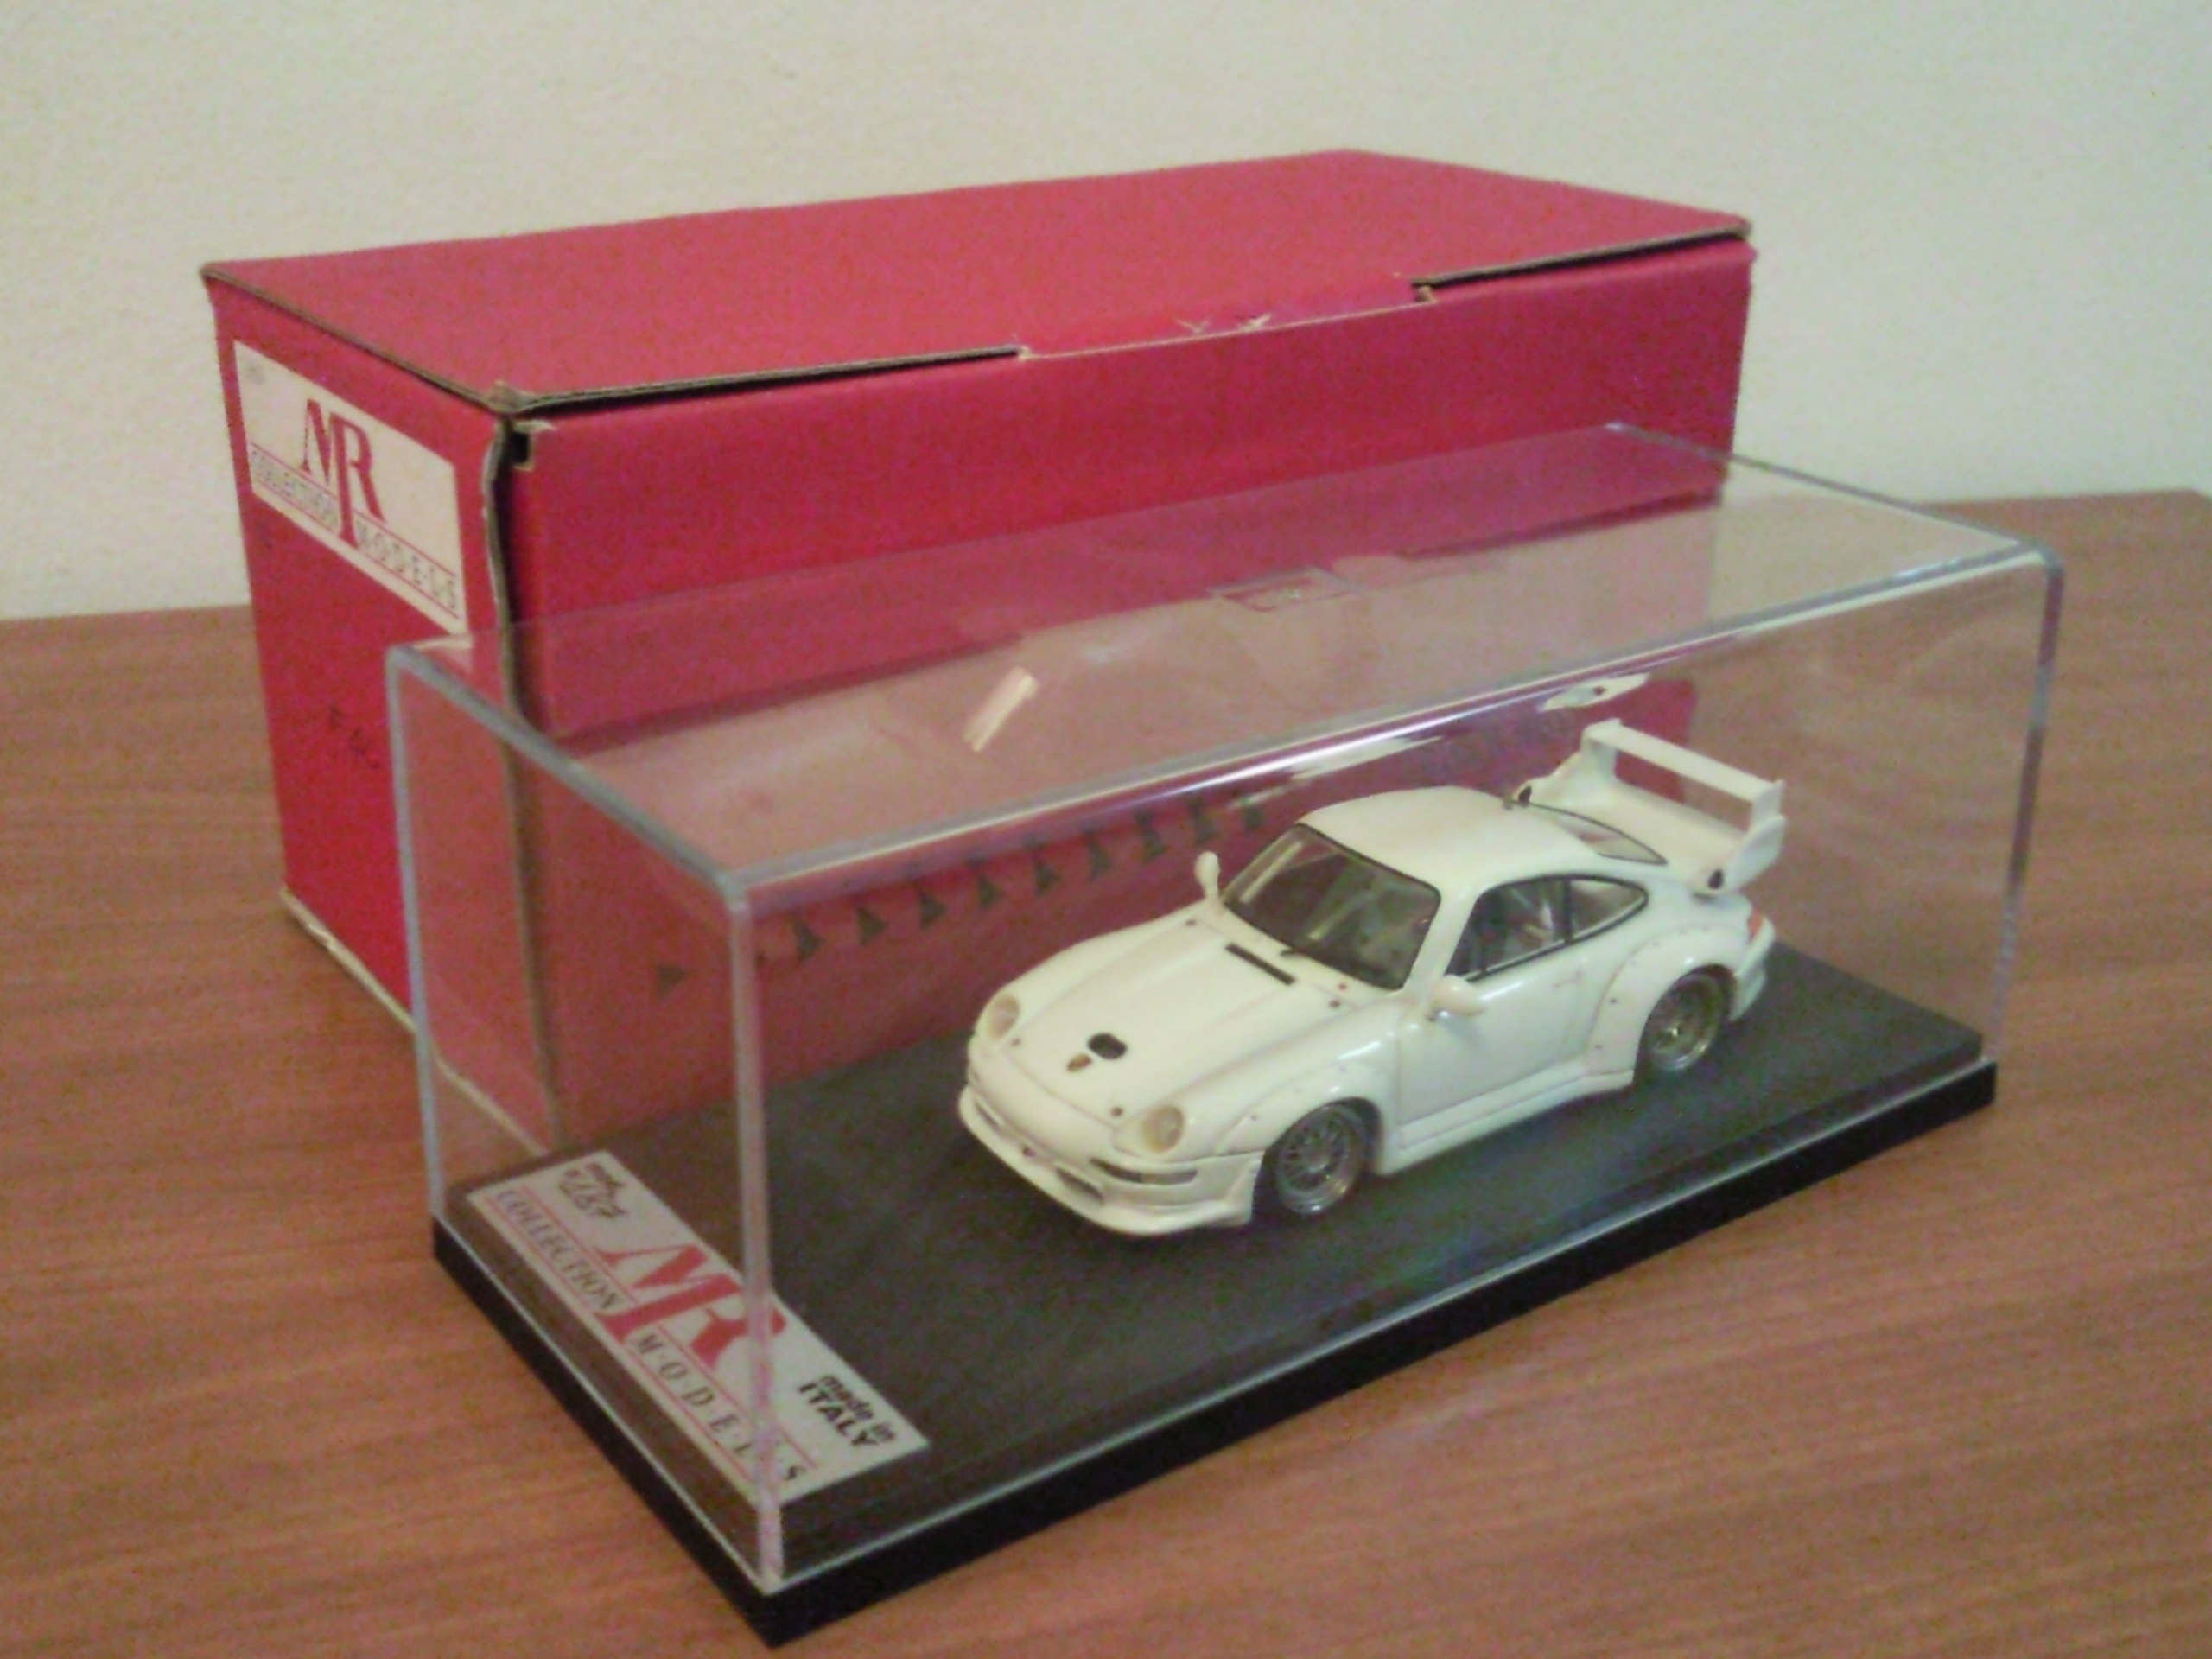 FOR SALE: PORSCHE DIECAST SCALE 1/43 MODEL CAR BY M.R